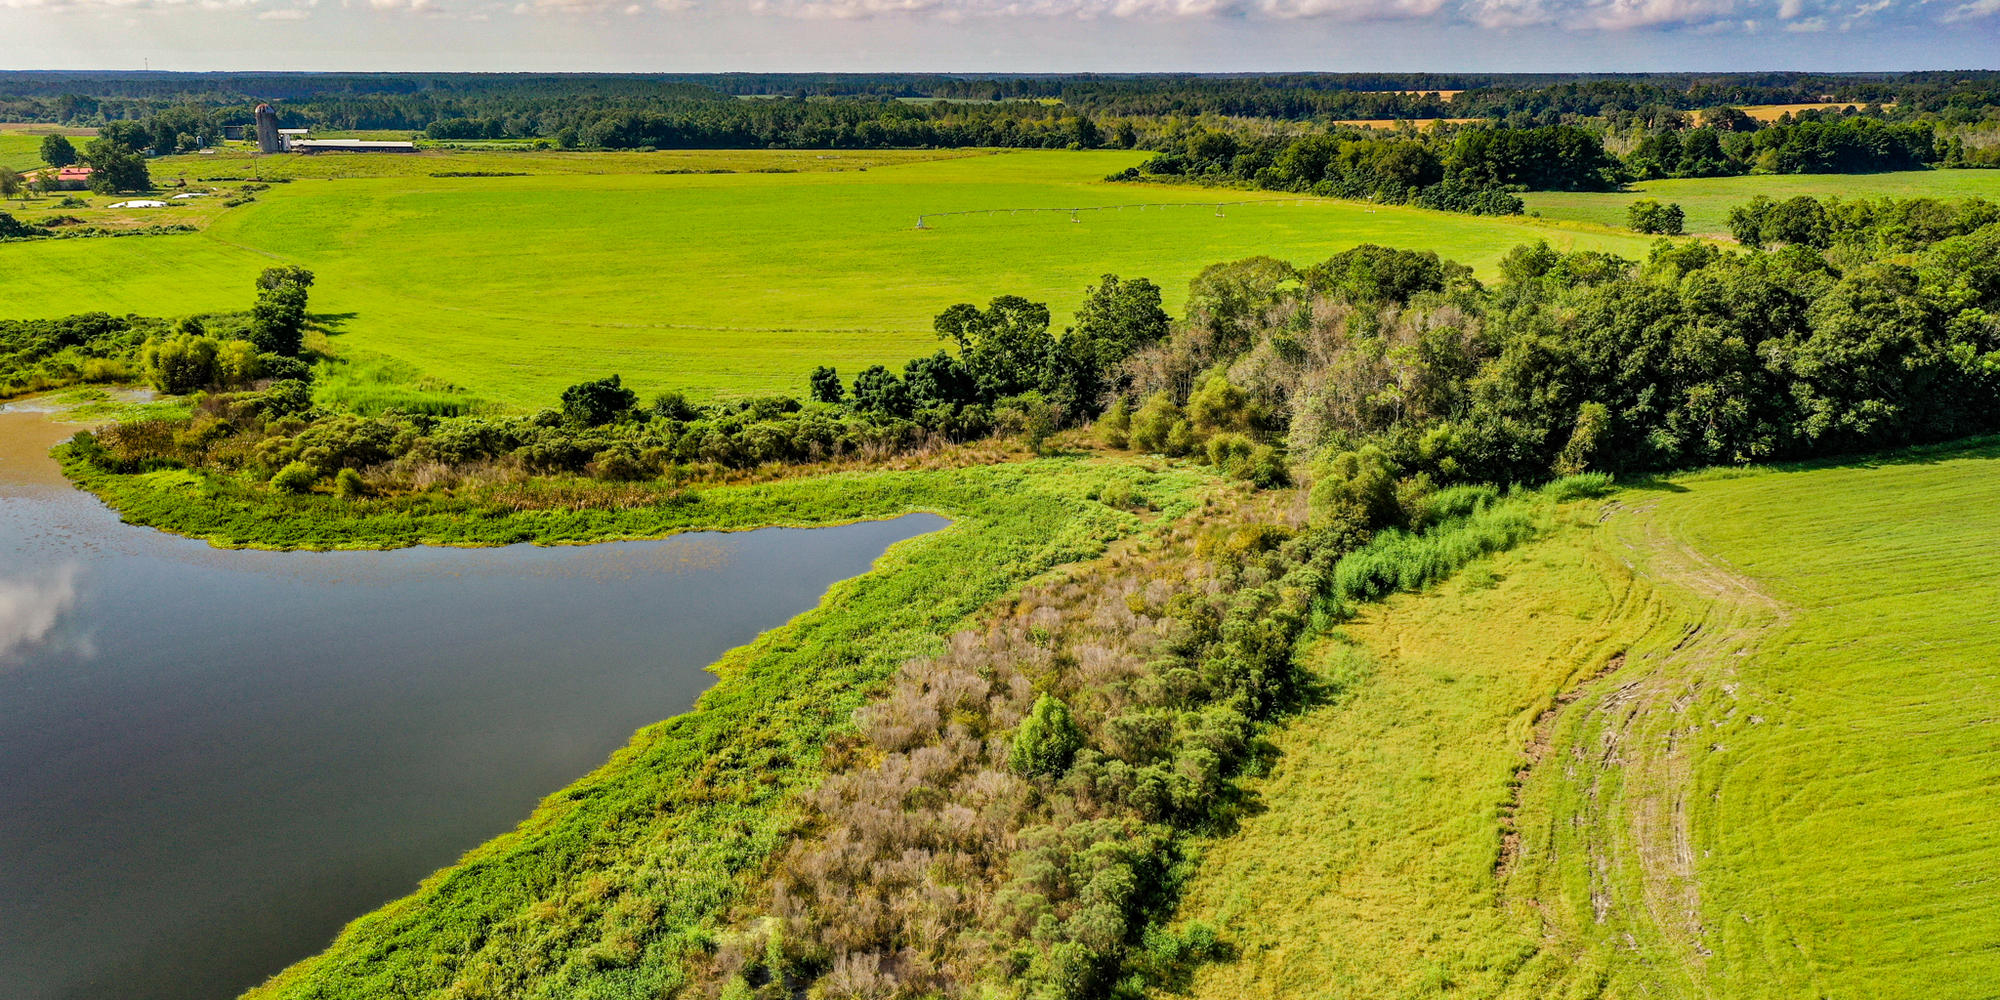 Pastureland, Cultivation, Home - Perfection in this Property - article image